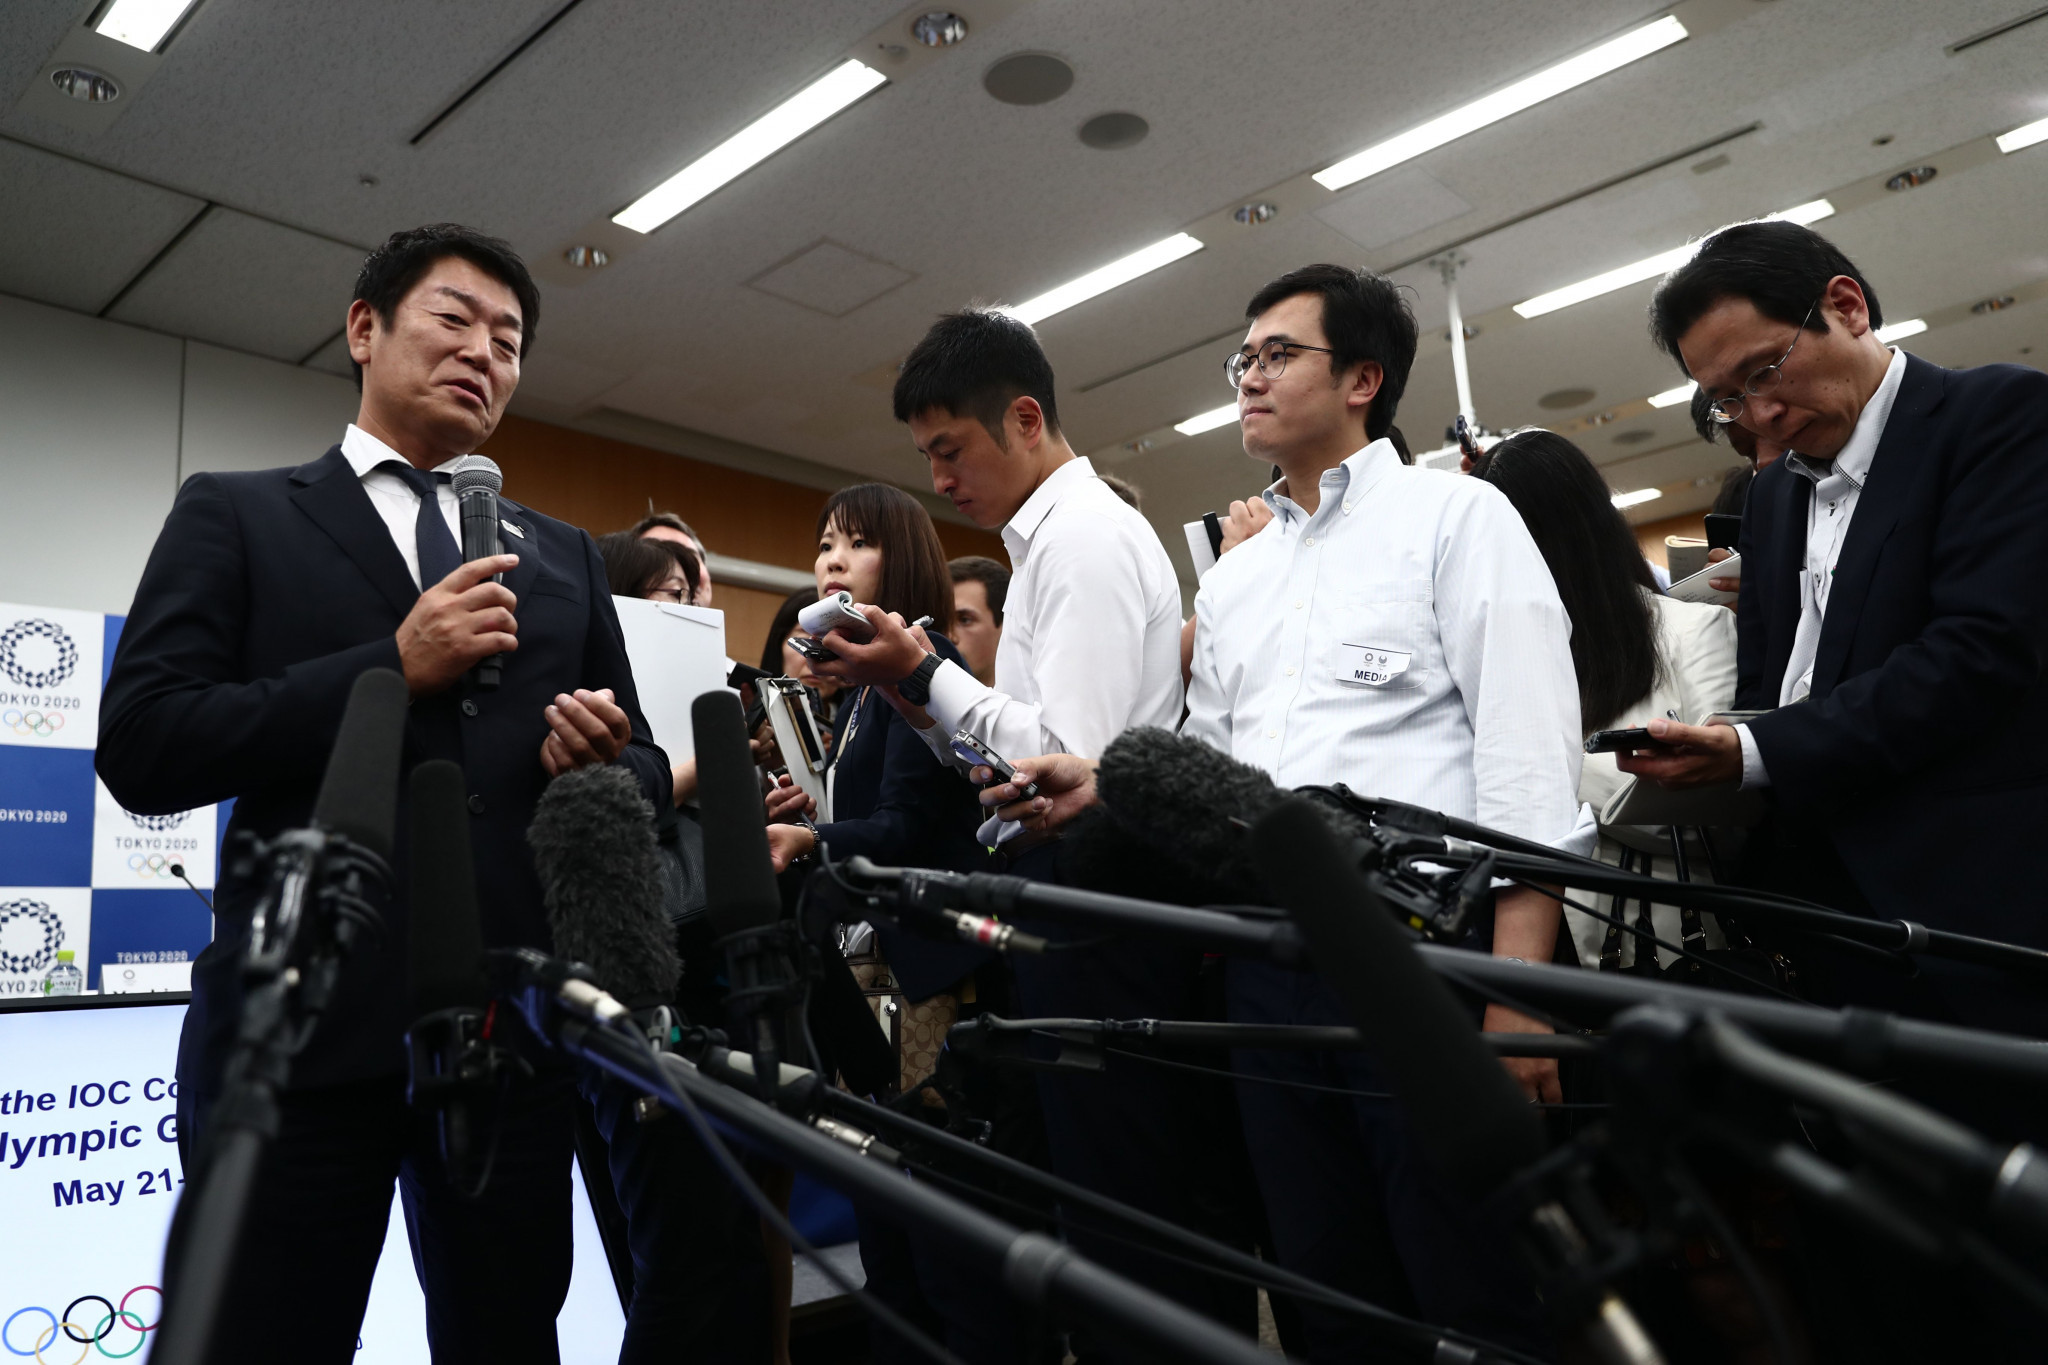 The IOC Boxing task force is being overseen by Japan's Morinari Watanabe ©Getty Images